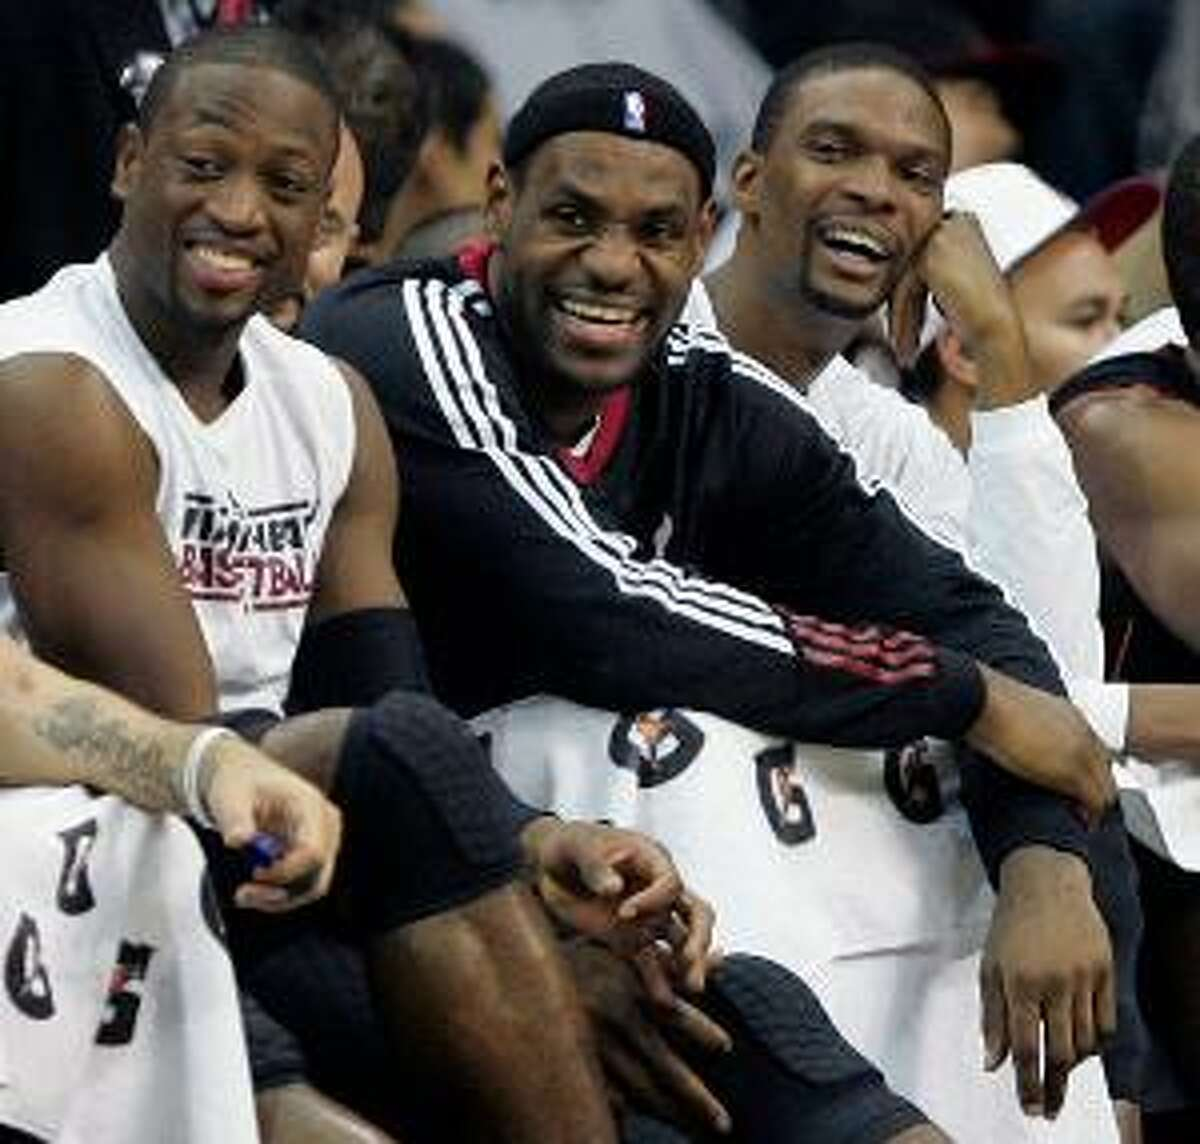 AP From left to right, Miami Heat players Dwyane Wade, LeBron James, and Chris Bosh laugh in the final moments of their game against the New Jersey Nets, Sunday, at the Prudential Center in Newark, N.J. The Heat defeated the Nets 101-78.